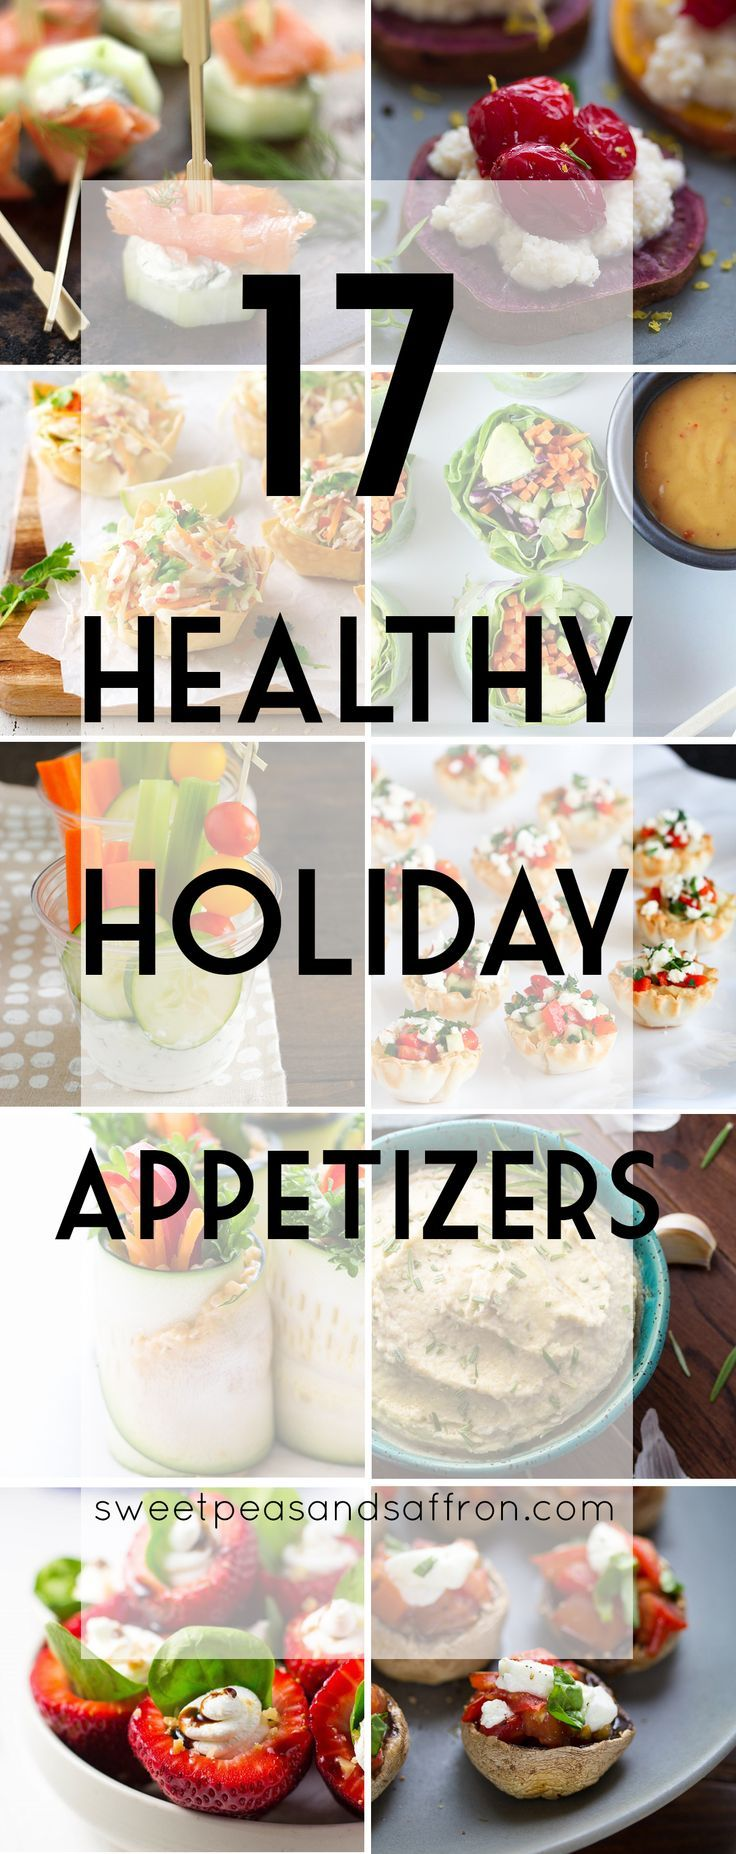 Healthy Christmas Appetizers Pinterest 17 Healthy Holiday Appetizers The Group Board On Pinterest